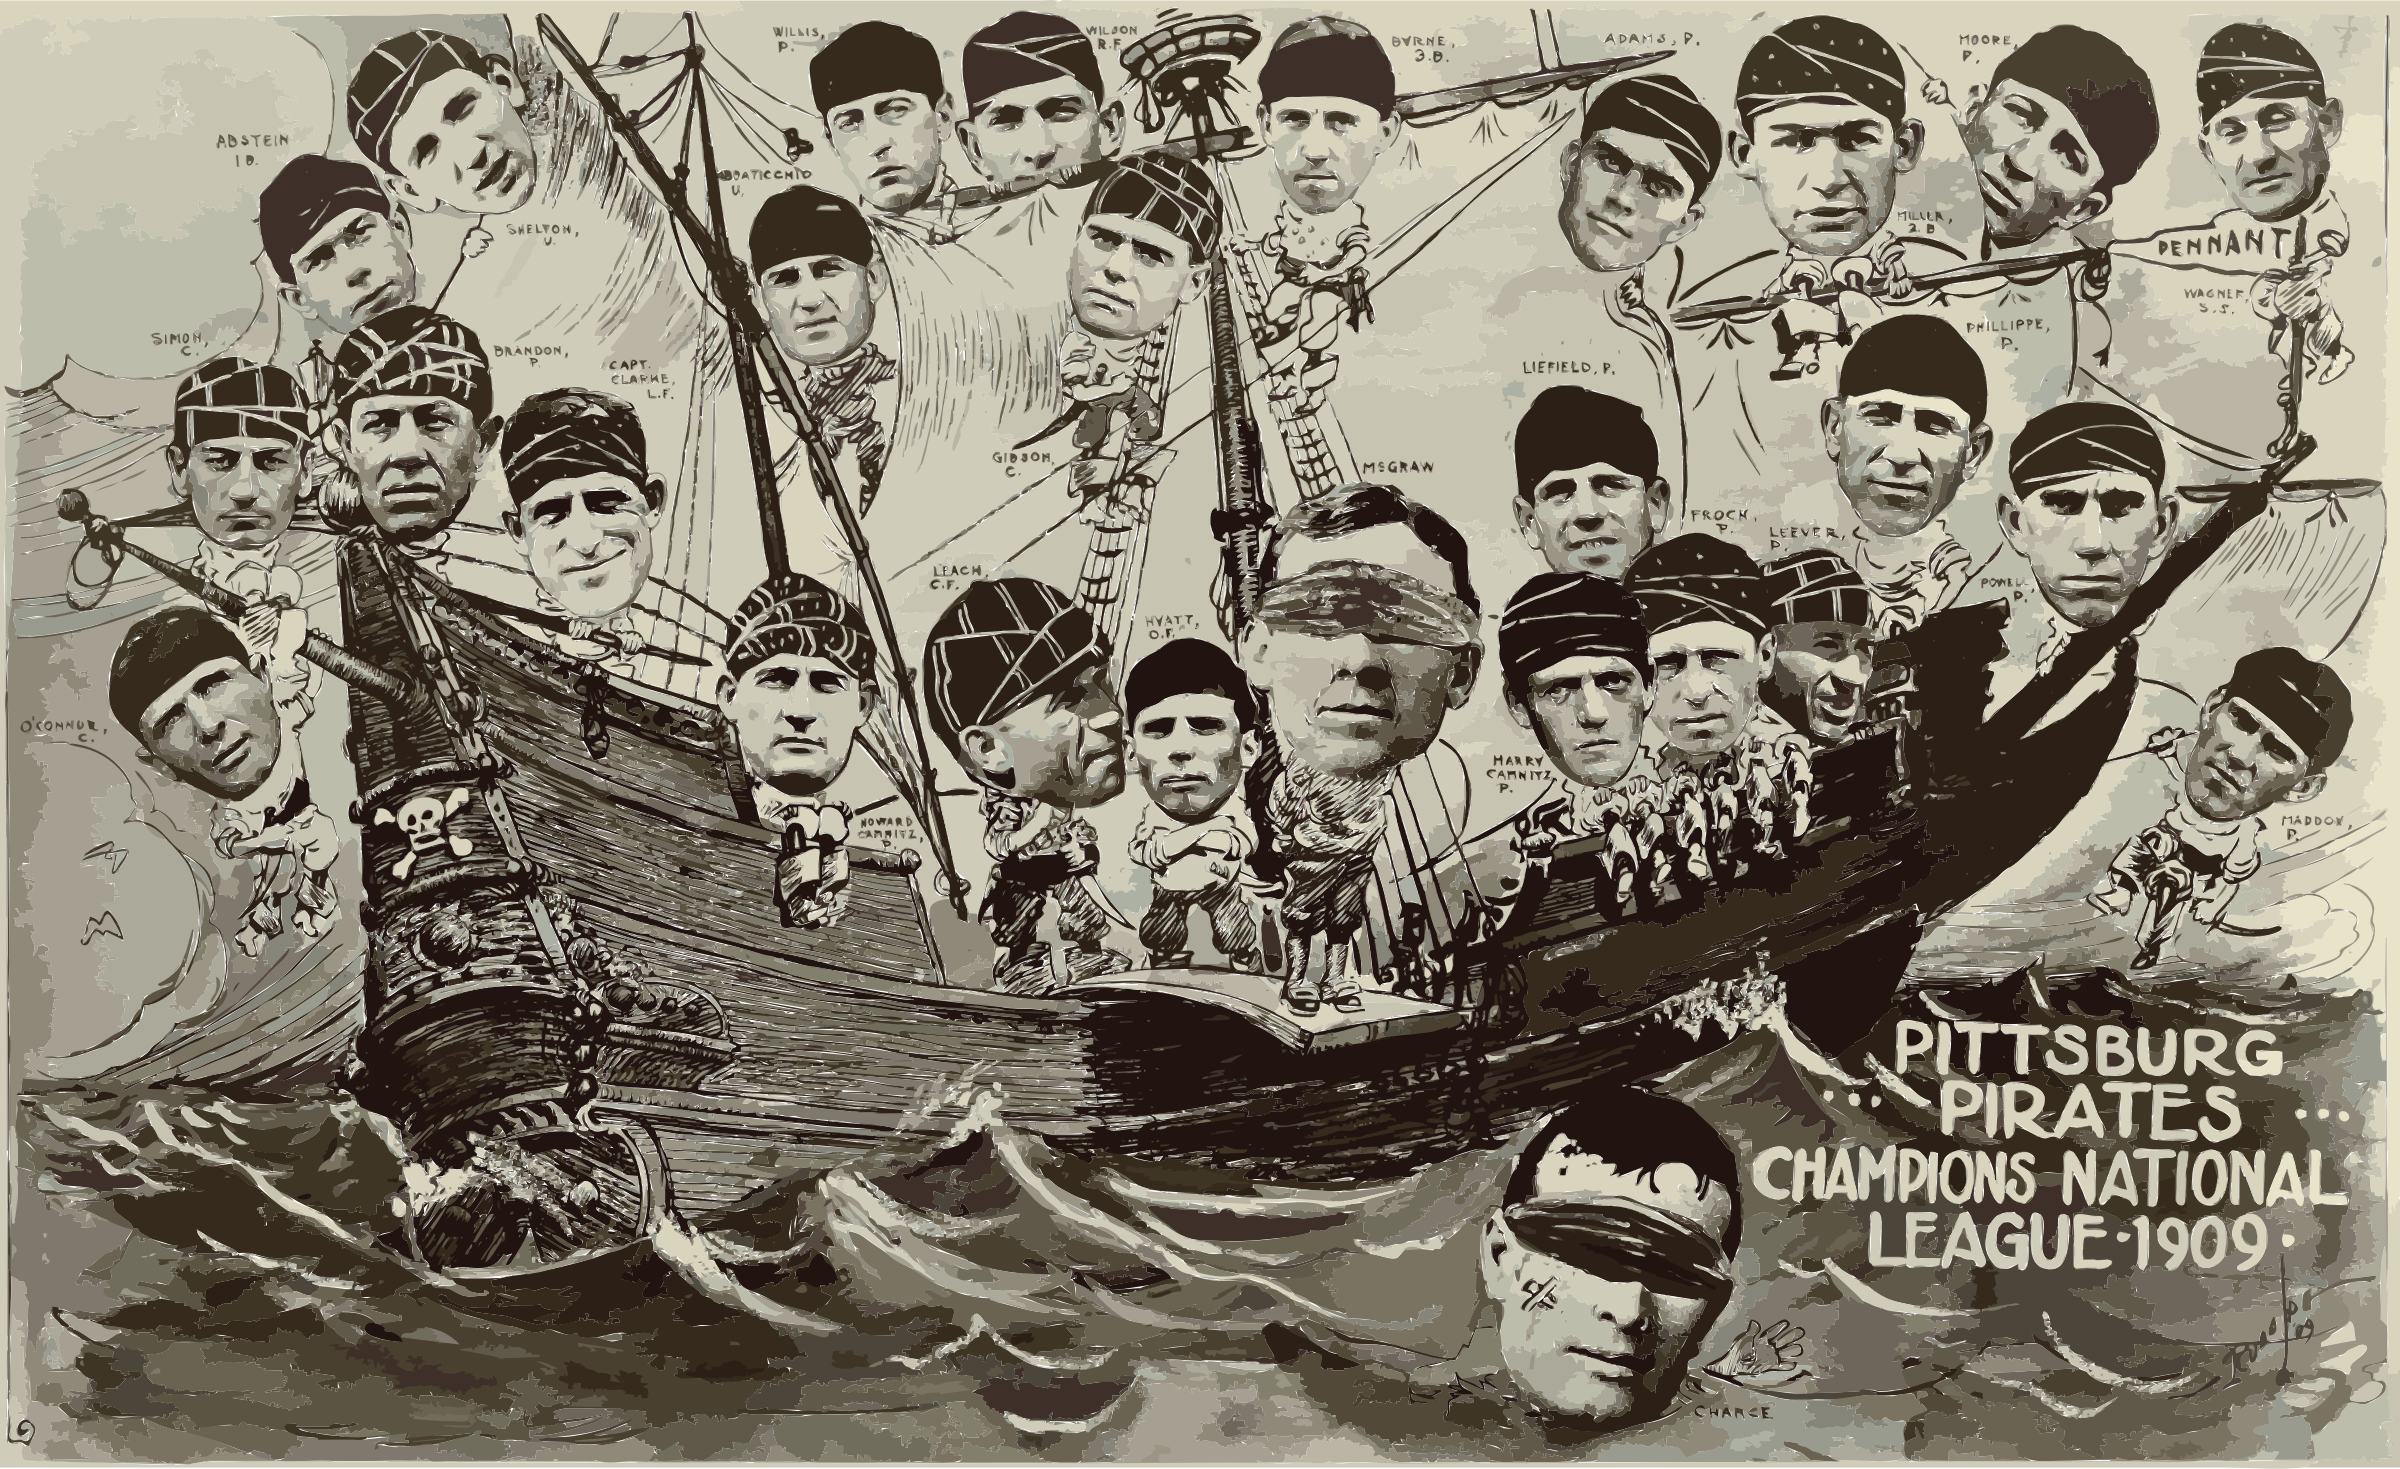 1909 Pittsburgh Pirates on a boat FINAL by 3w8fbs+4hwz16kbwo43s